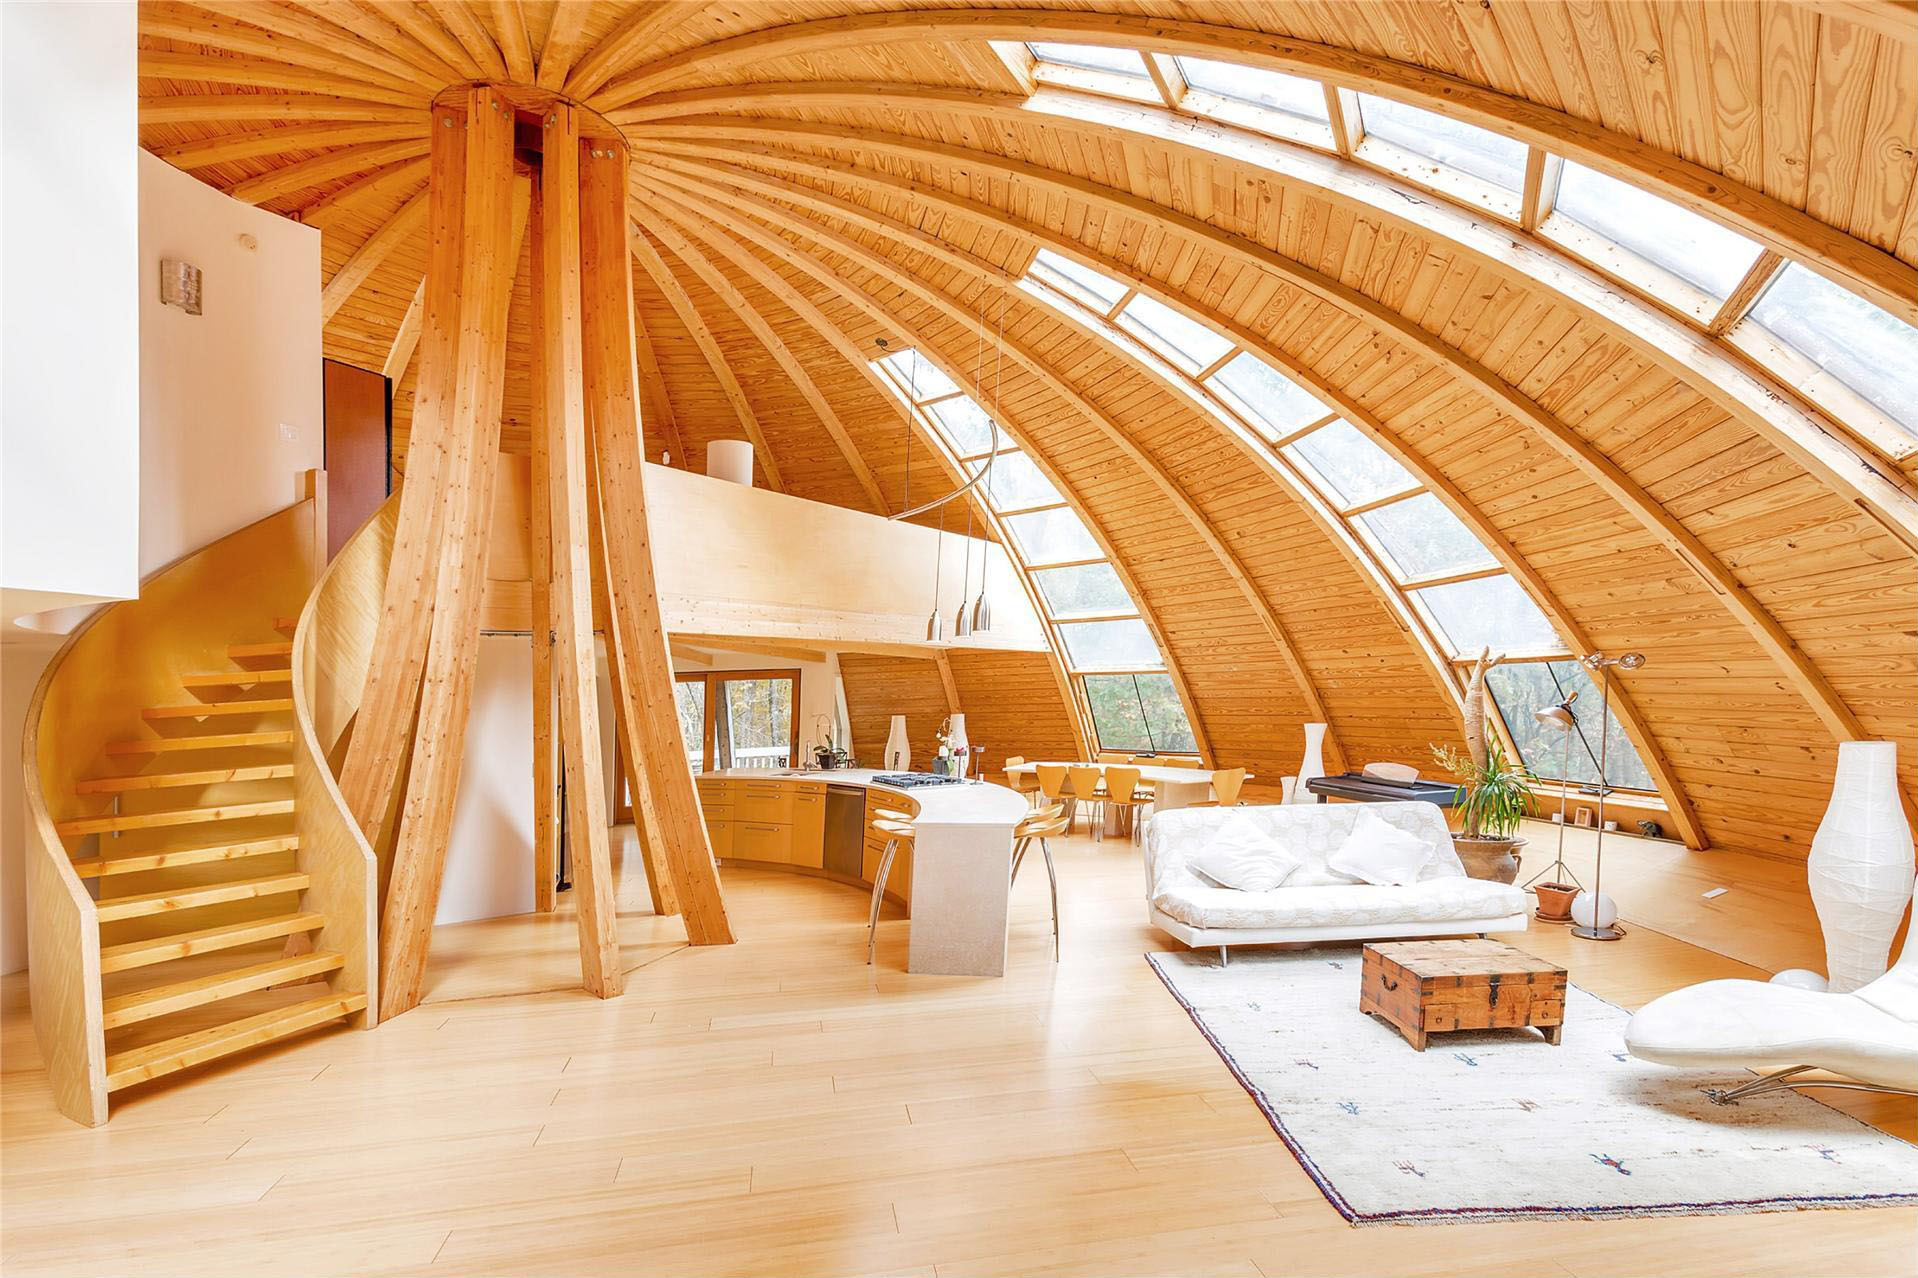 Flying saucer shaped house takes design to new heights for Interior design styles wood